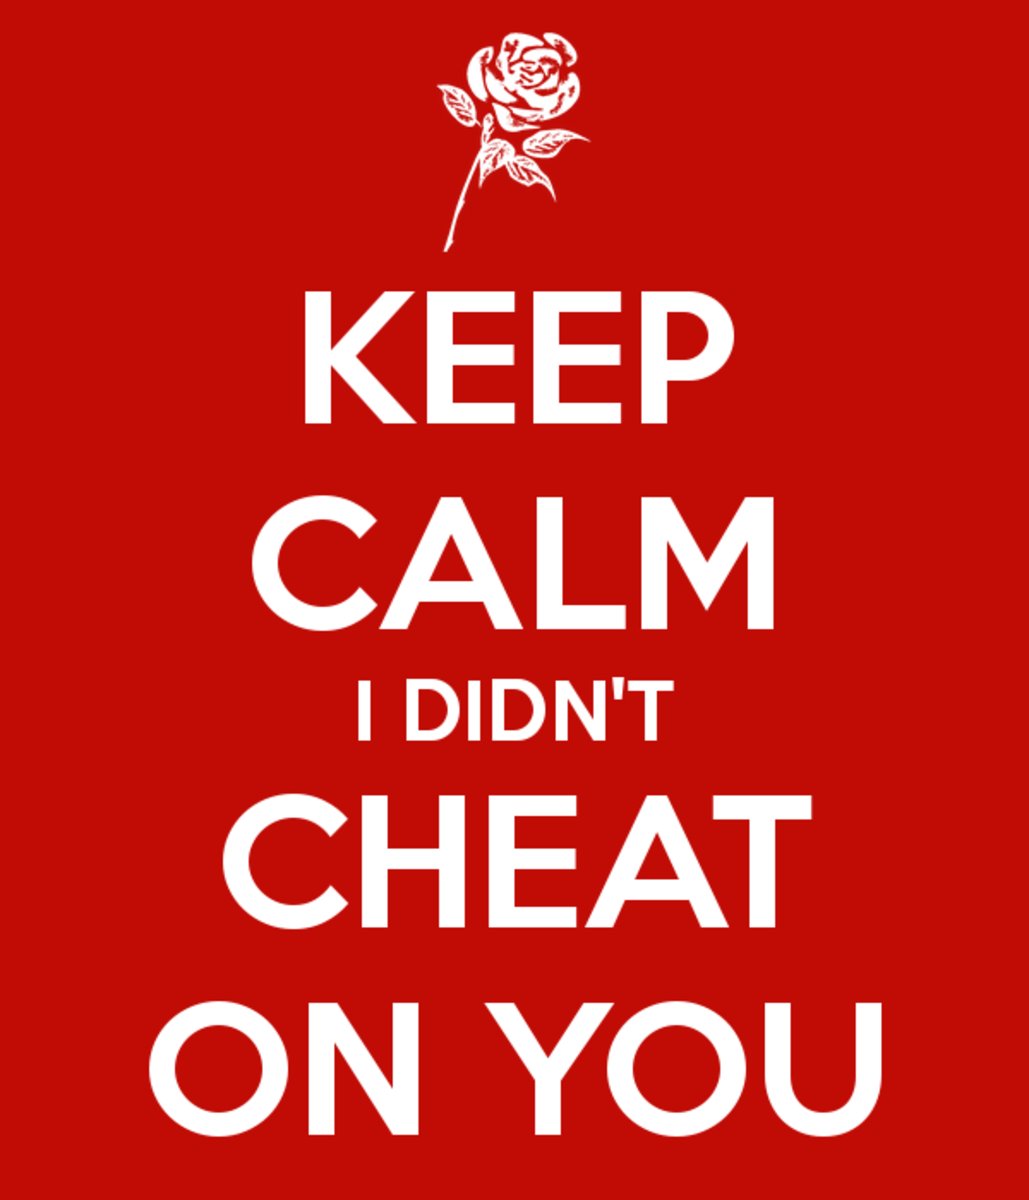 1-reason-when-cheating-is-not-cheating